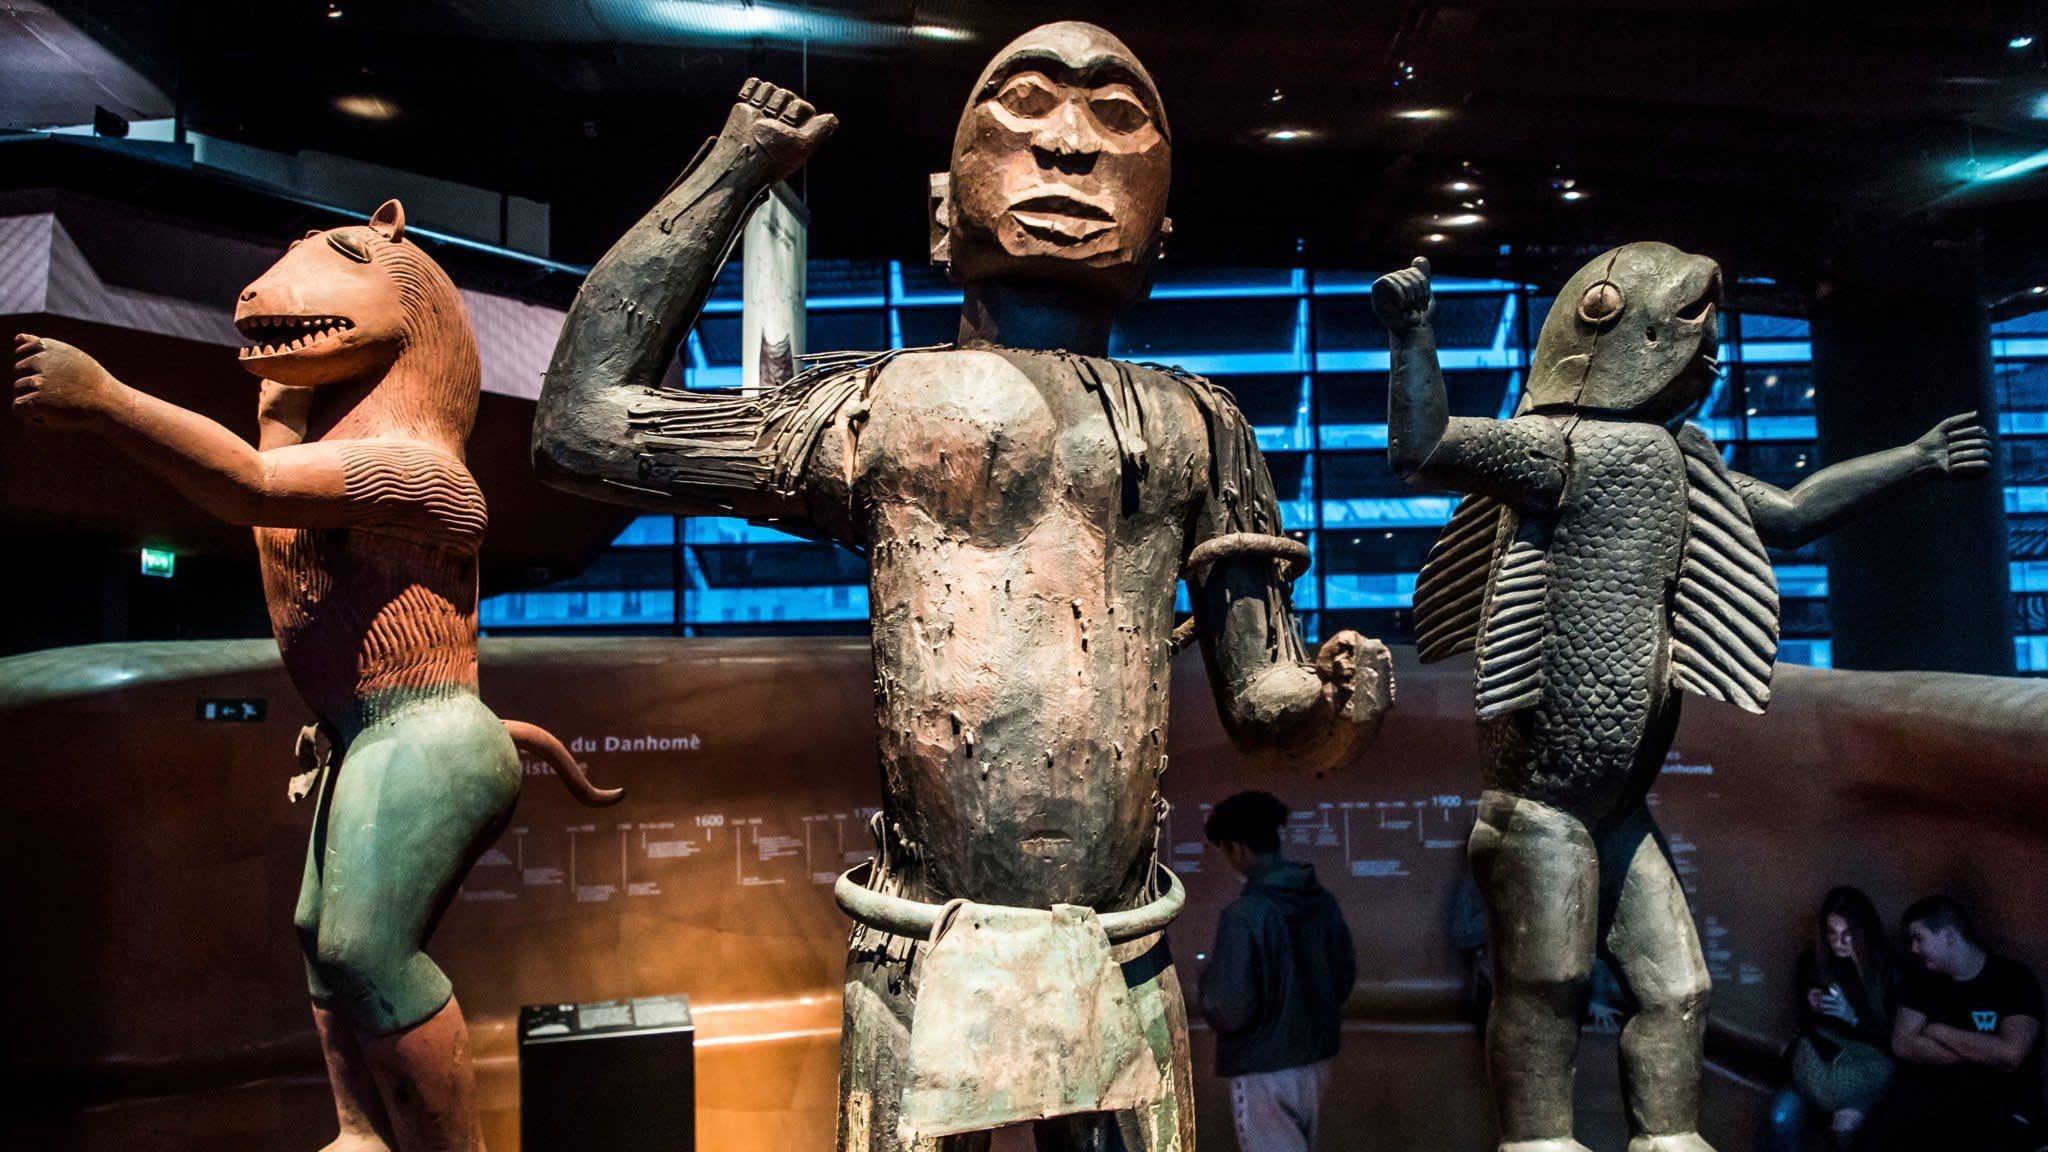 France urged to return museum artefacts to Africa